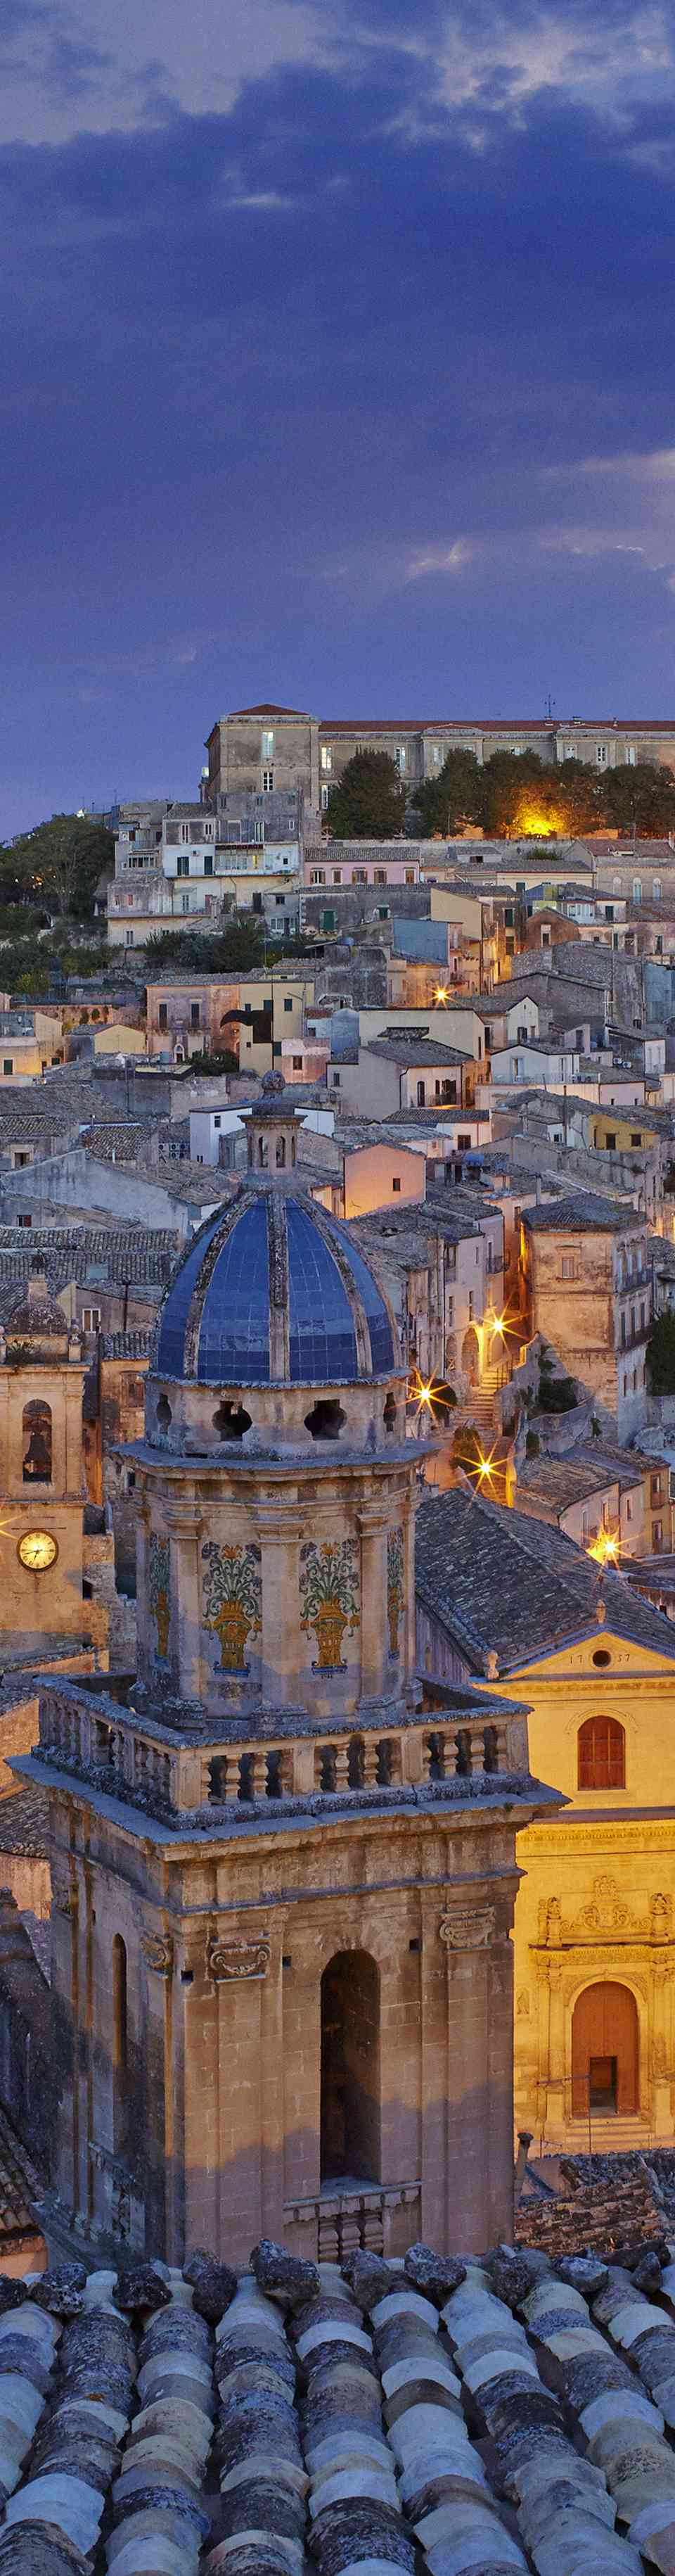 Ragusa Ibla, Sicily, an Overseas Adventure Travel destination